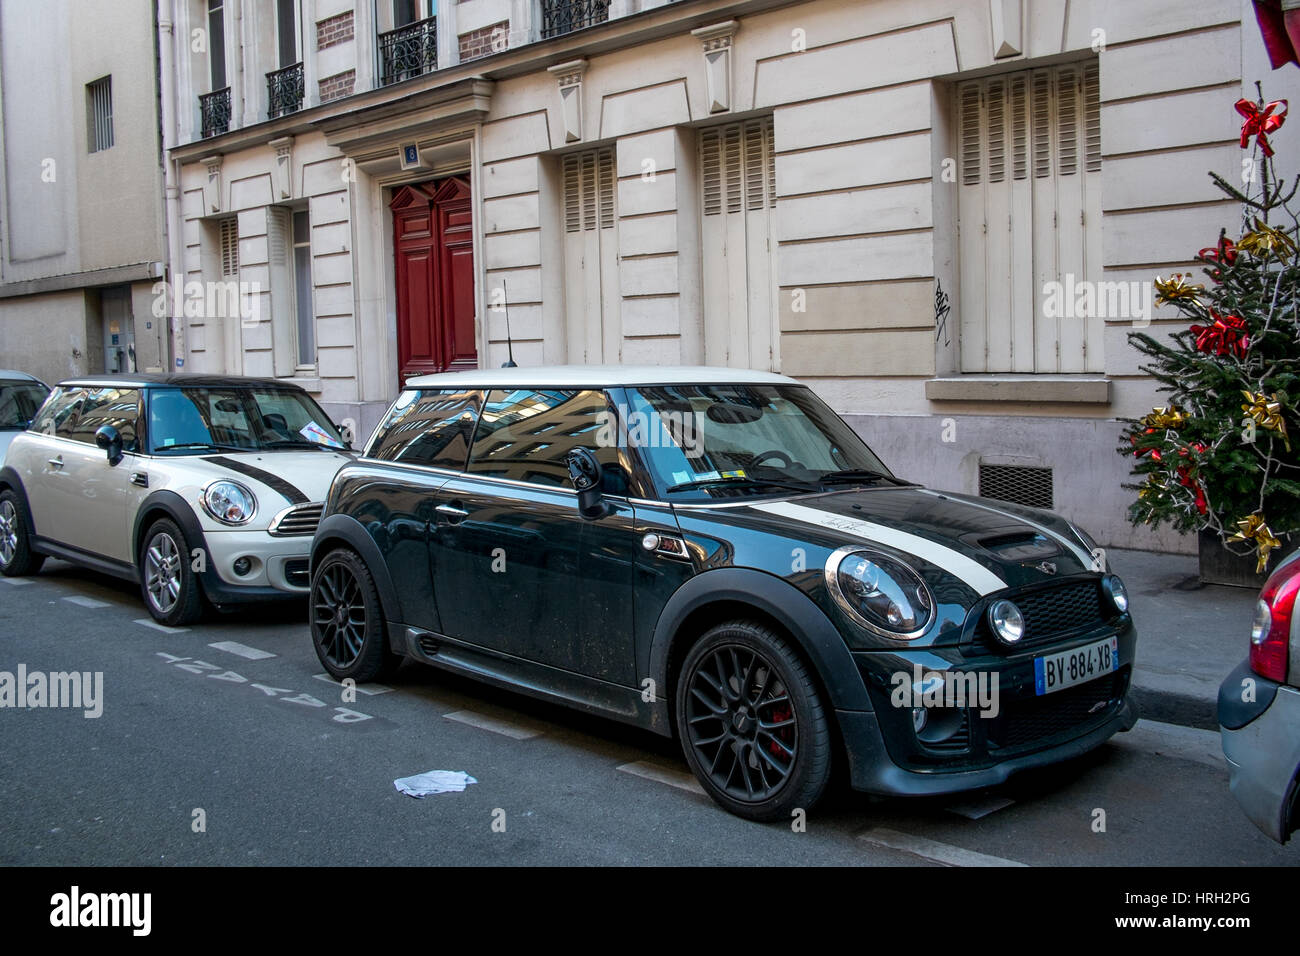 Mini R56 John Cooper Works Parked In A Parisian Street Stock Photo